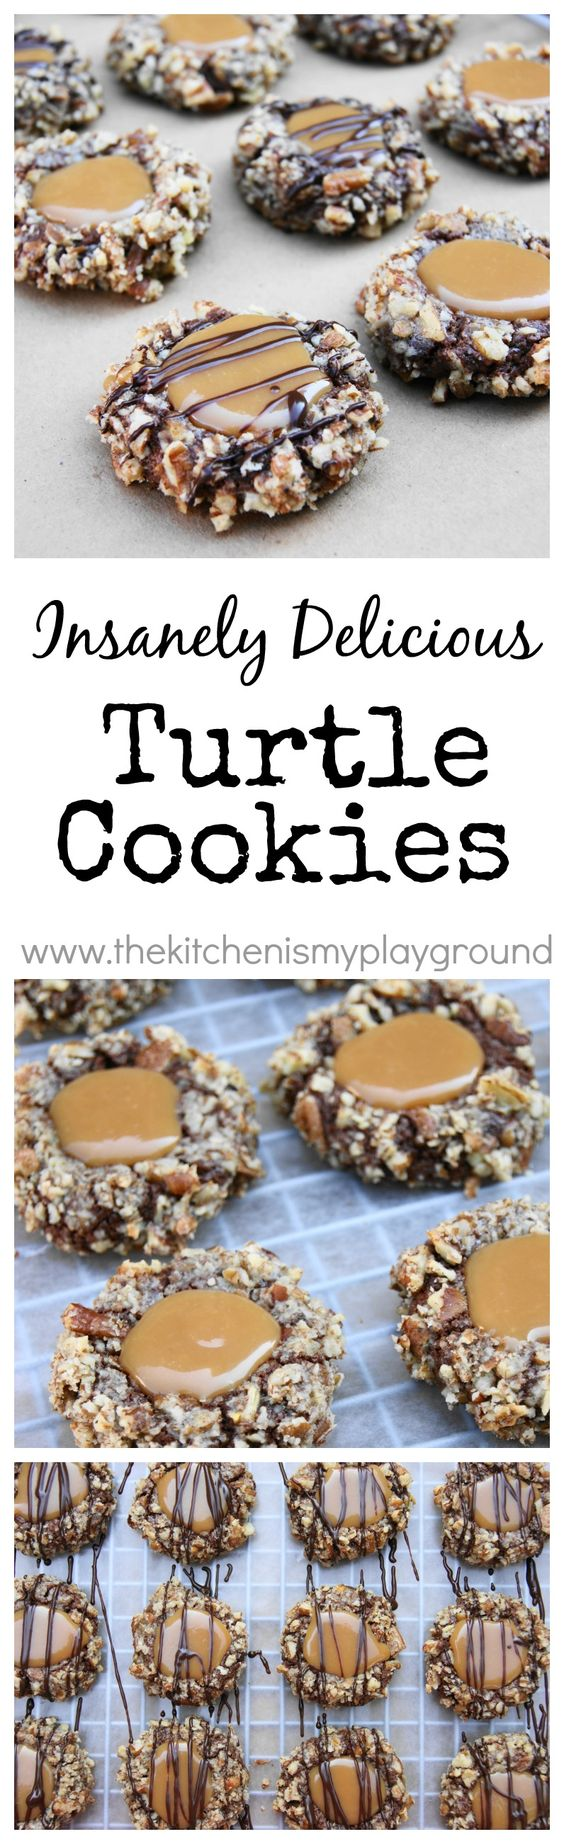 ... Delicious Turtle Cookies | Turtles candy, Homemade caramels and Pecans